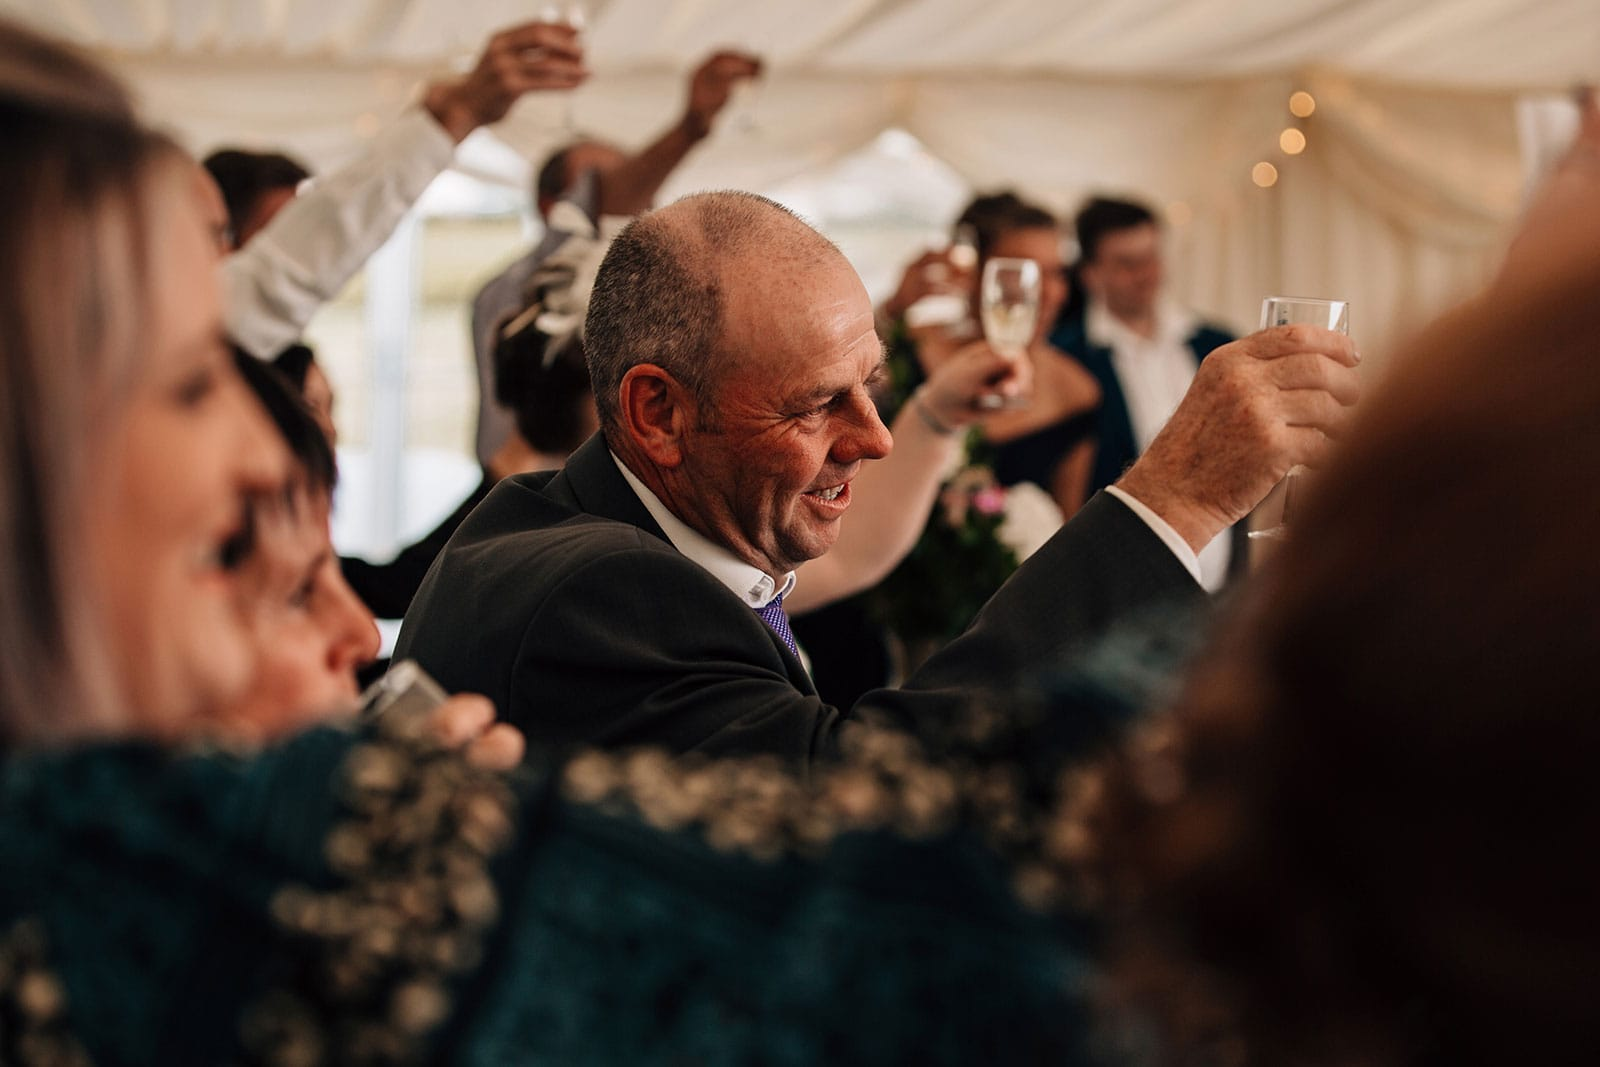 Yorkshire photographer our approach to wedding speeches